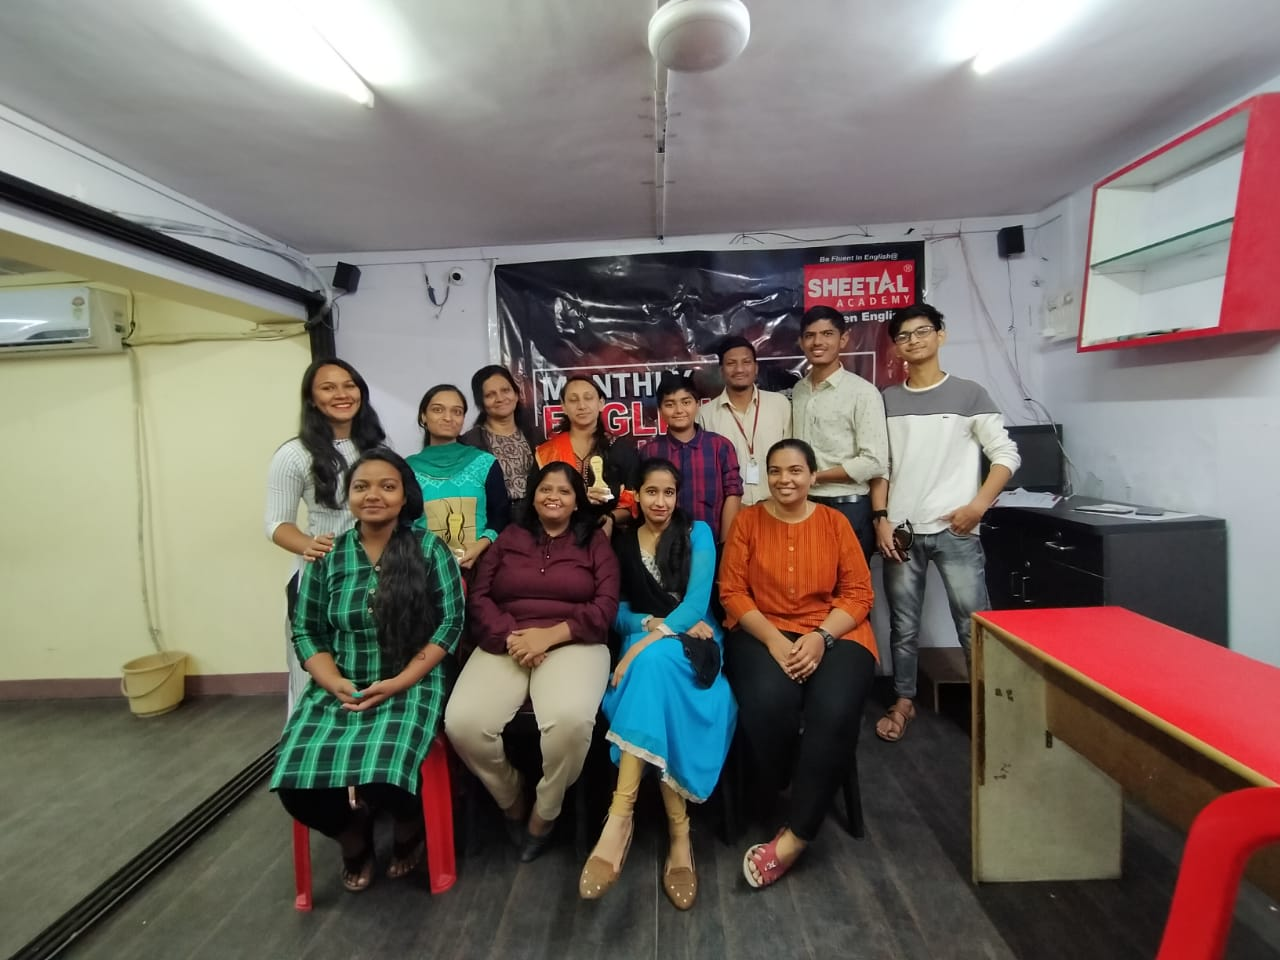 Course Completion Event - Sheetal Academy